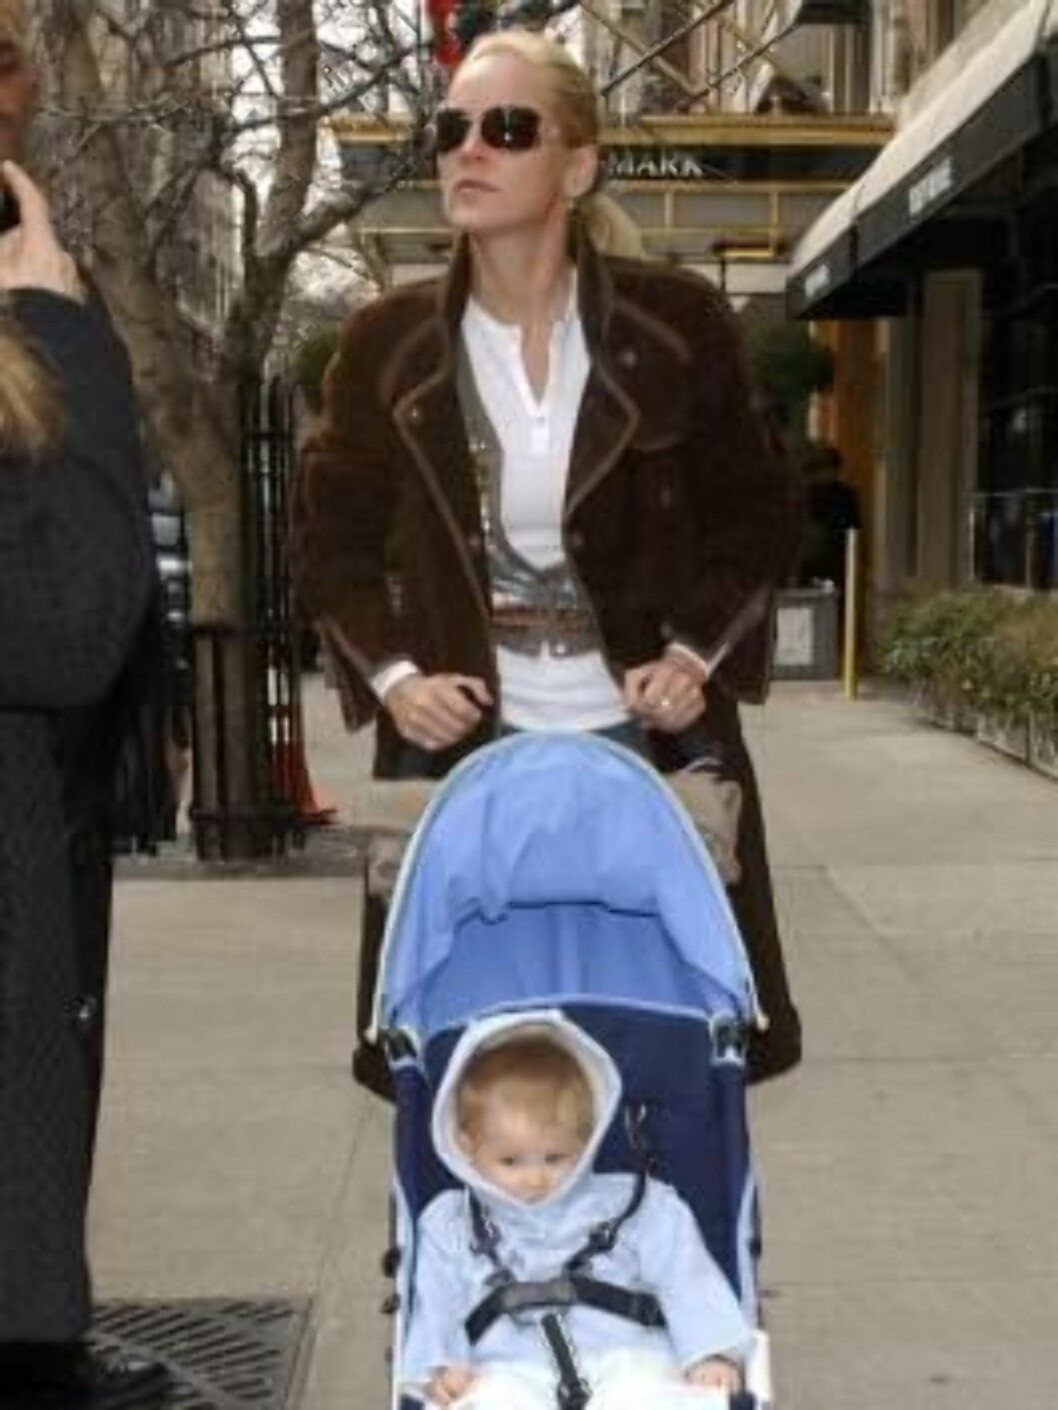 This image is not included in any subscription deal. Use of this image will incur a charge.  NEW YORK - MARCH 24: (ITALY OUT, NY DAILY NEWS OUT, NY NEWSDAY OUT) Sharon Stone is seen walking with her newly adopted baby boy, Laird on Madison Ave on March 24 Foto: All Over Press